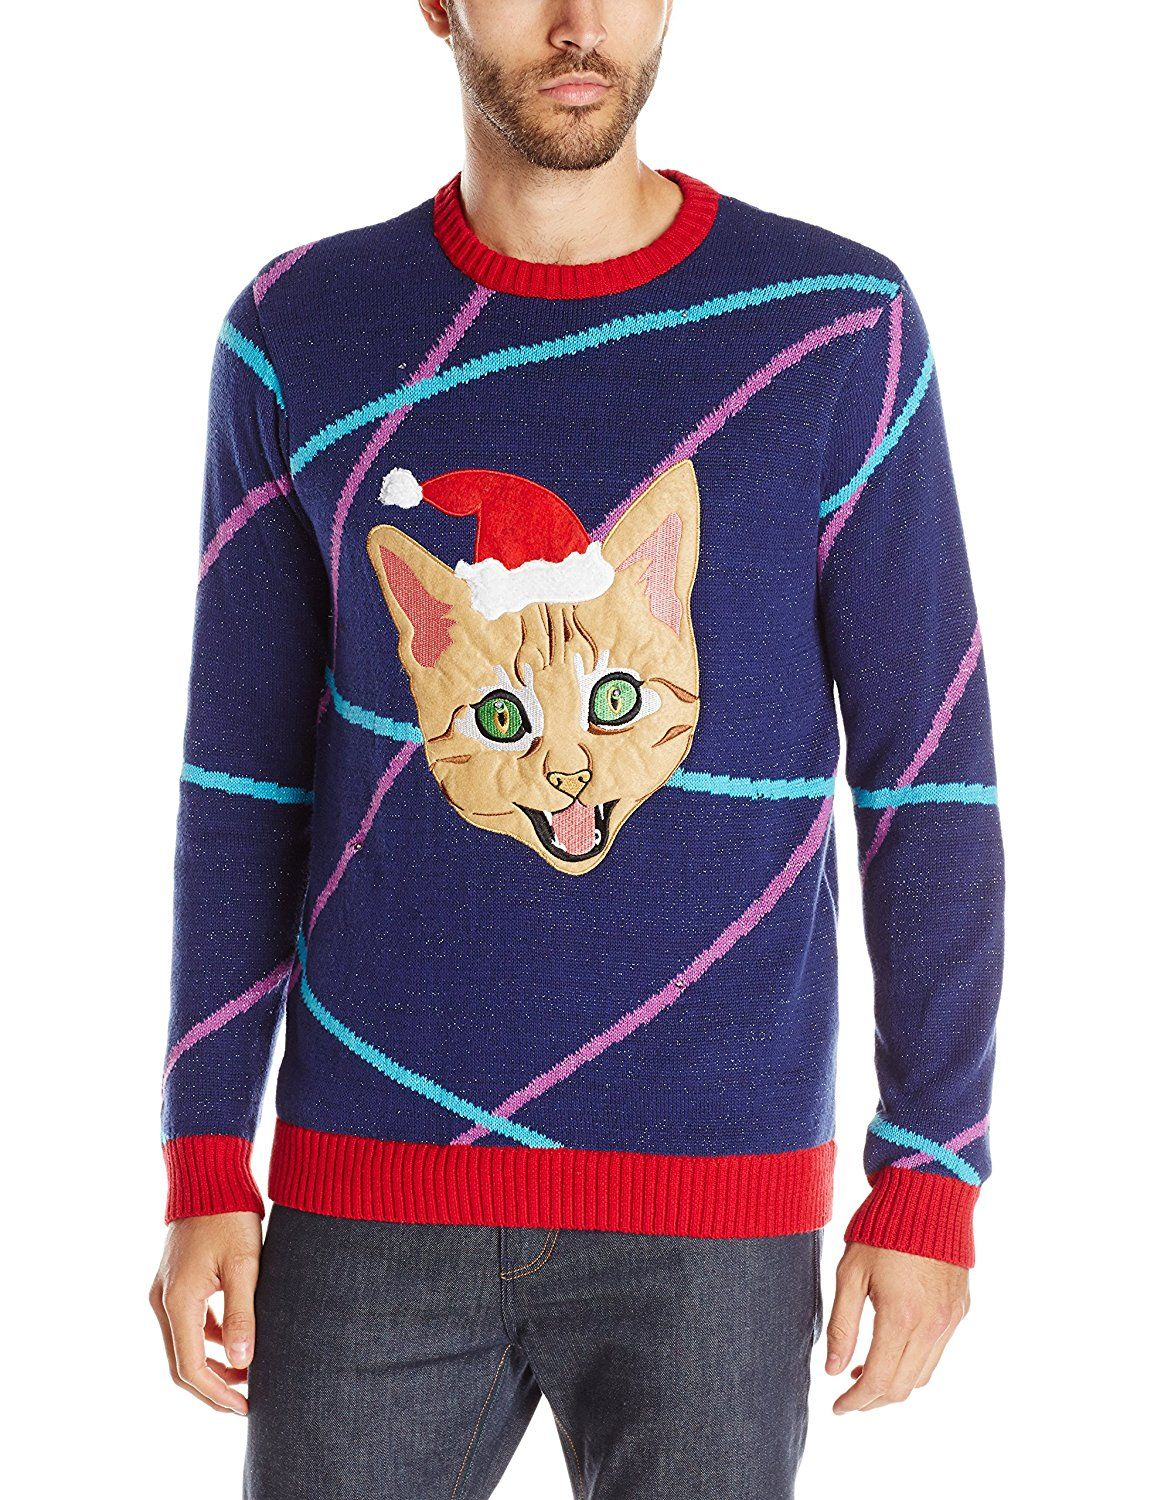 1ad796809 Blizzard Bay Men s Light up Lazer Kitty Ugly Christmas Sweater at Amazon  Men s Clothing store